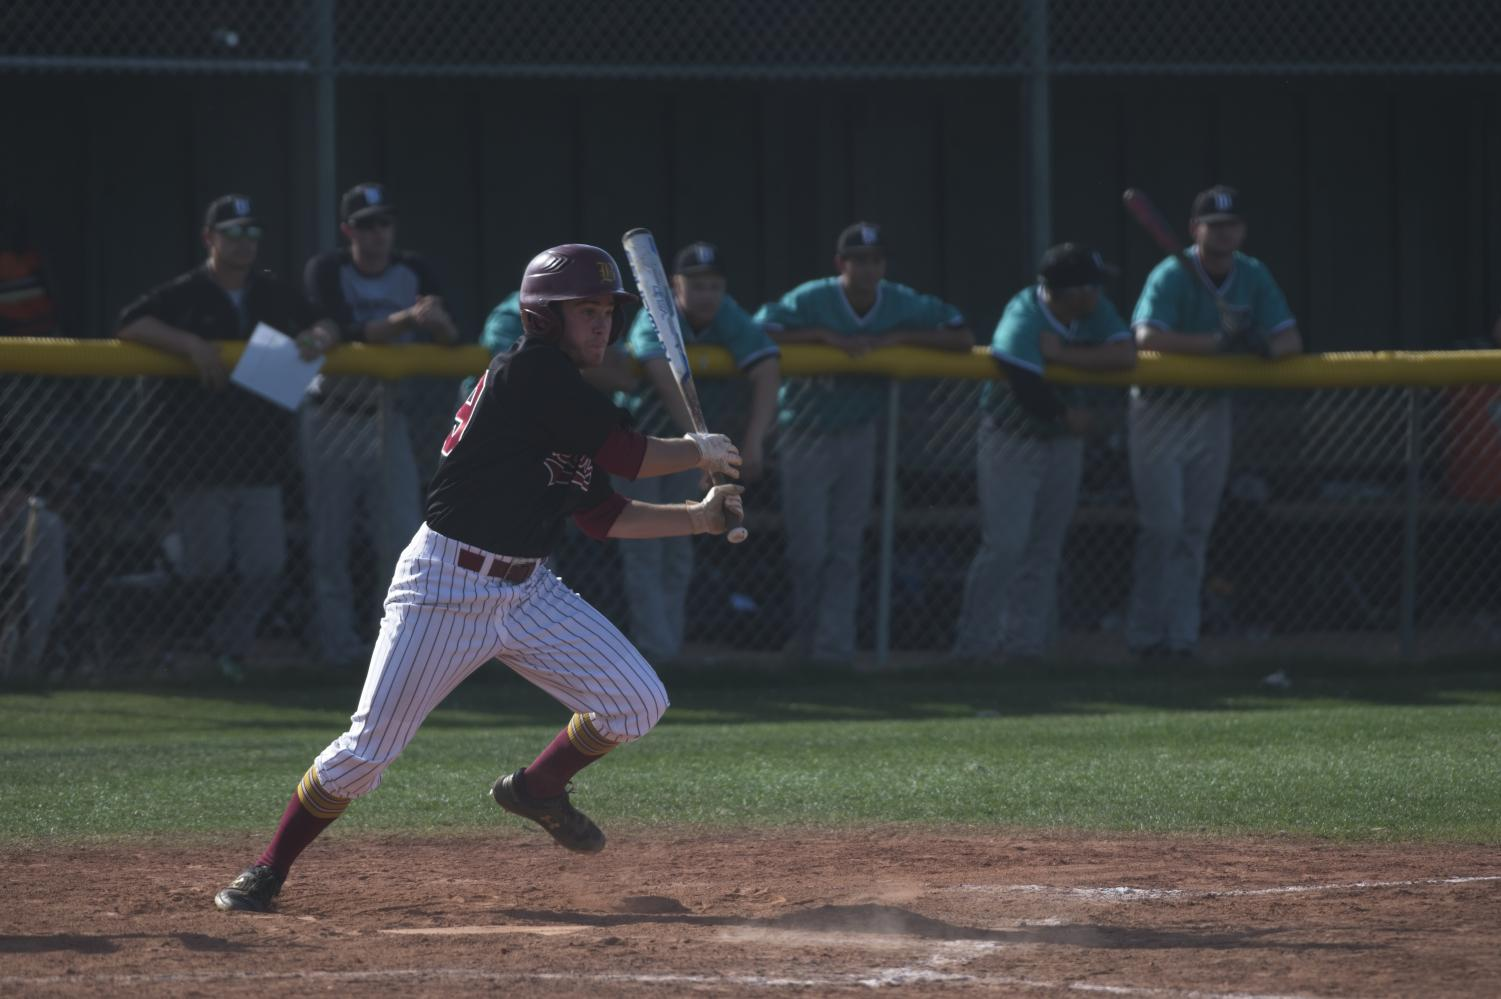 Centerfielder Anthony Sortino leaves the batters box after making contact in De Anza's 9-7 loss on April 18.